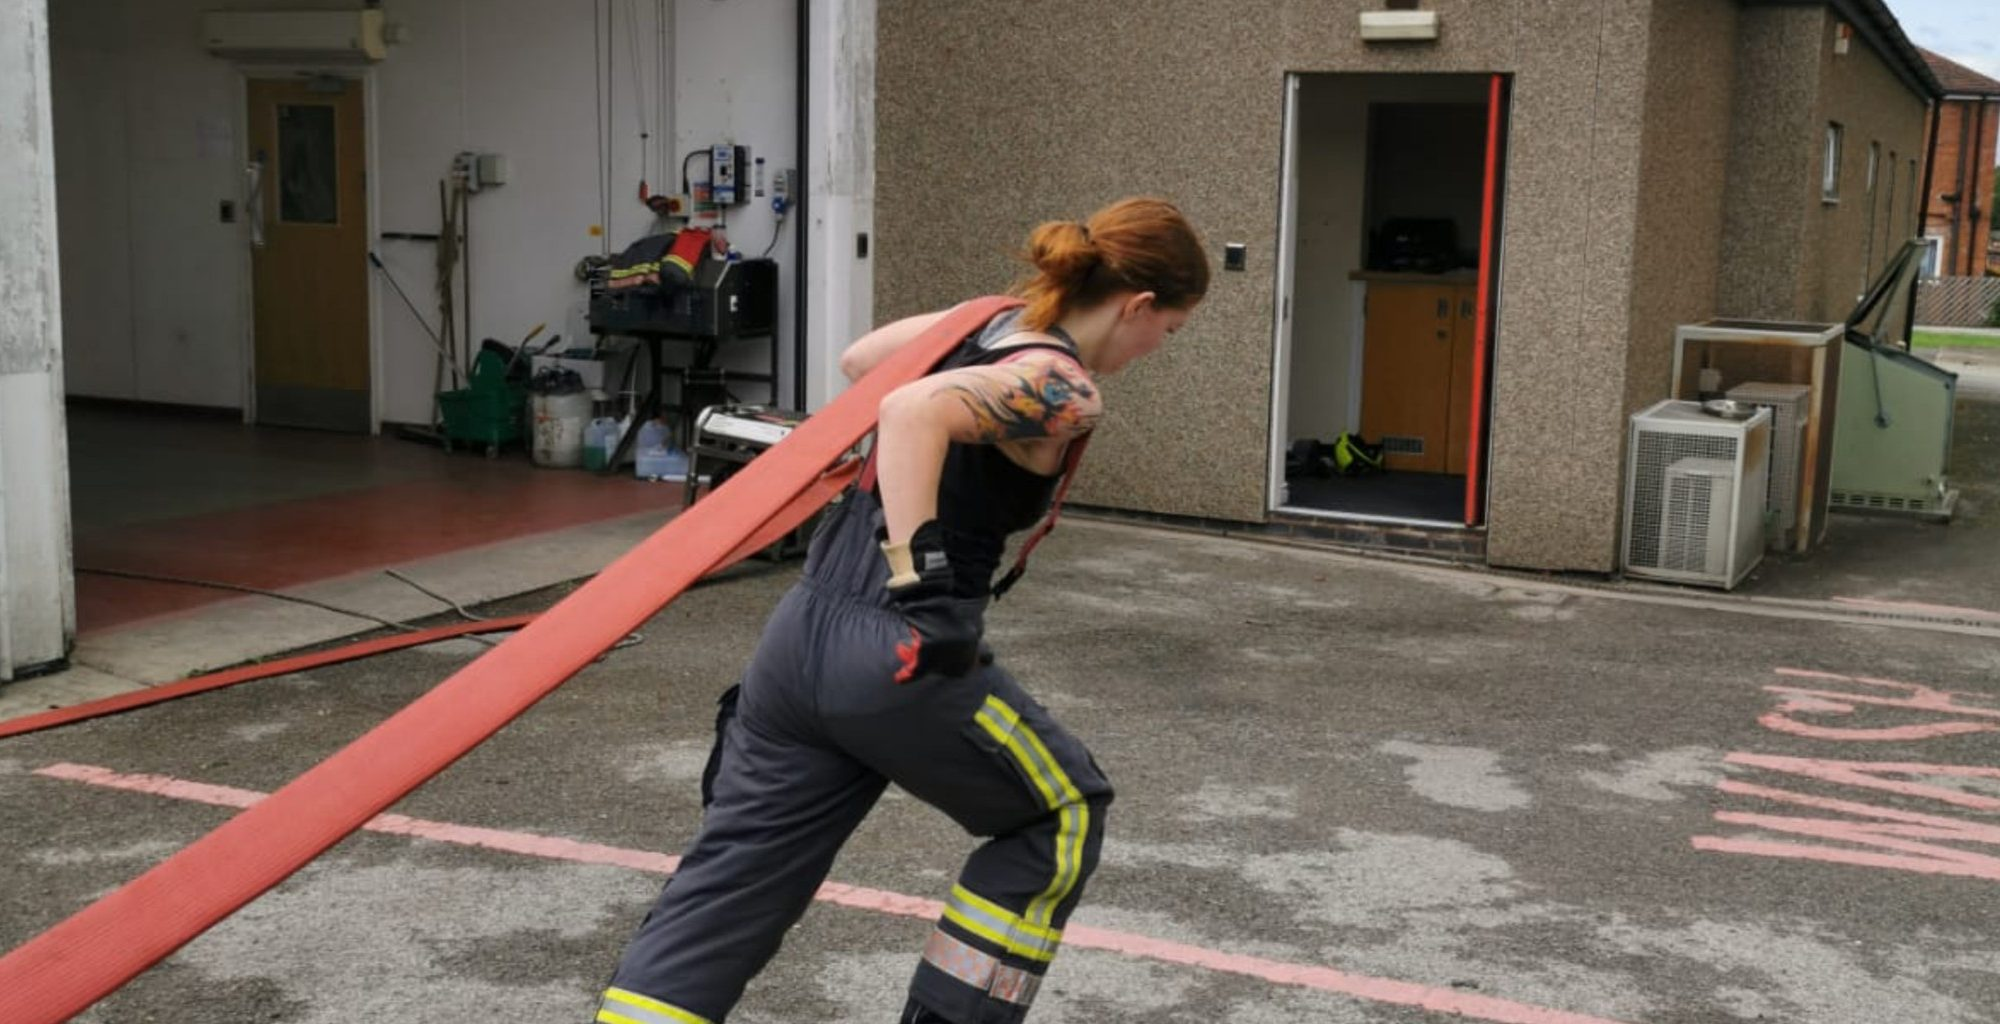 Firefighter on hose drag exercises